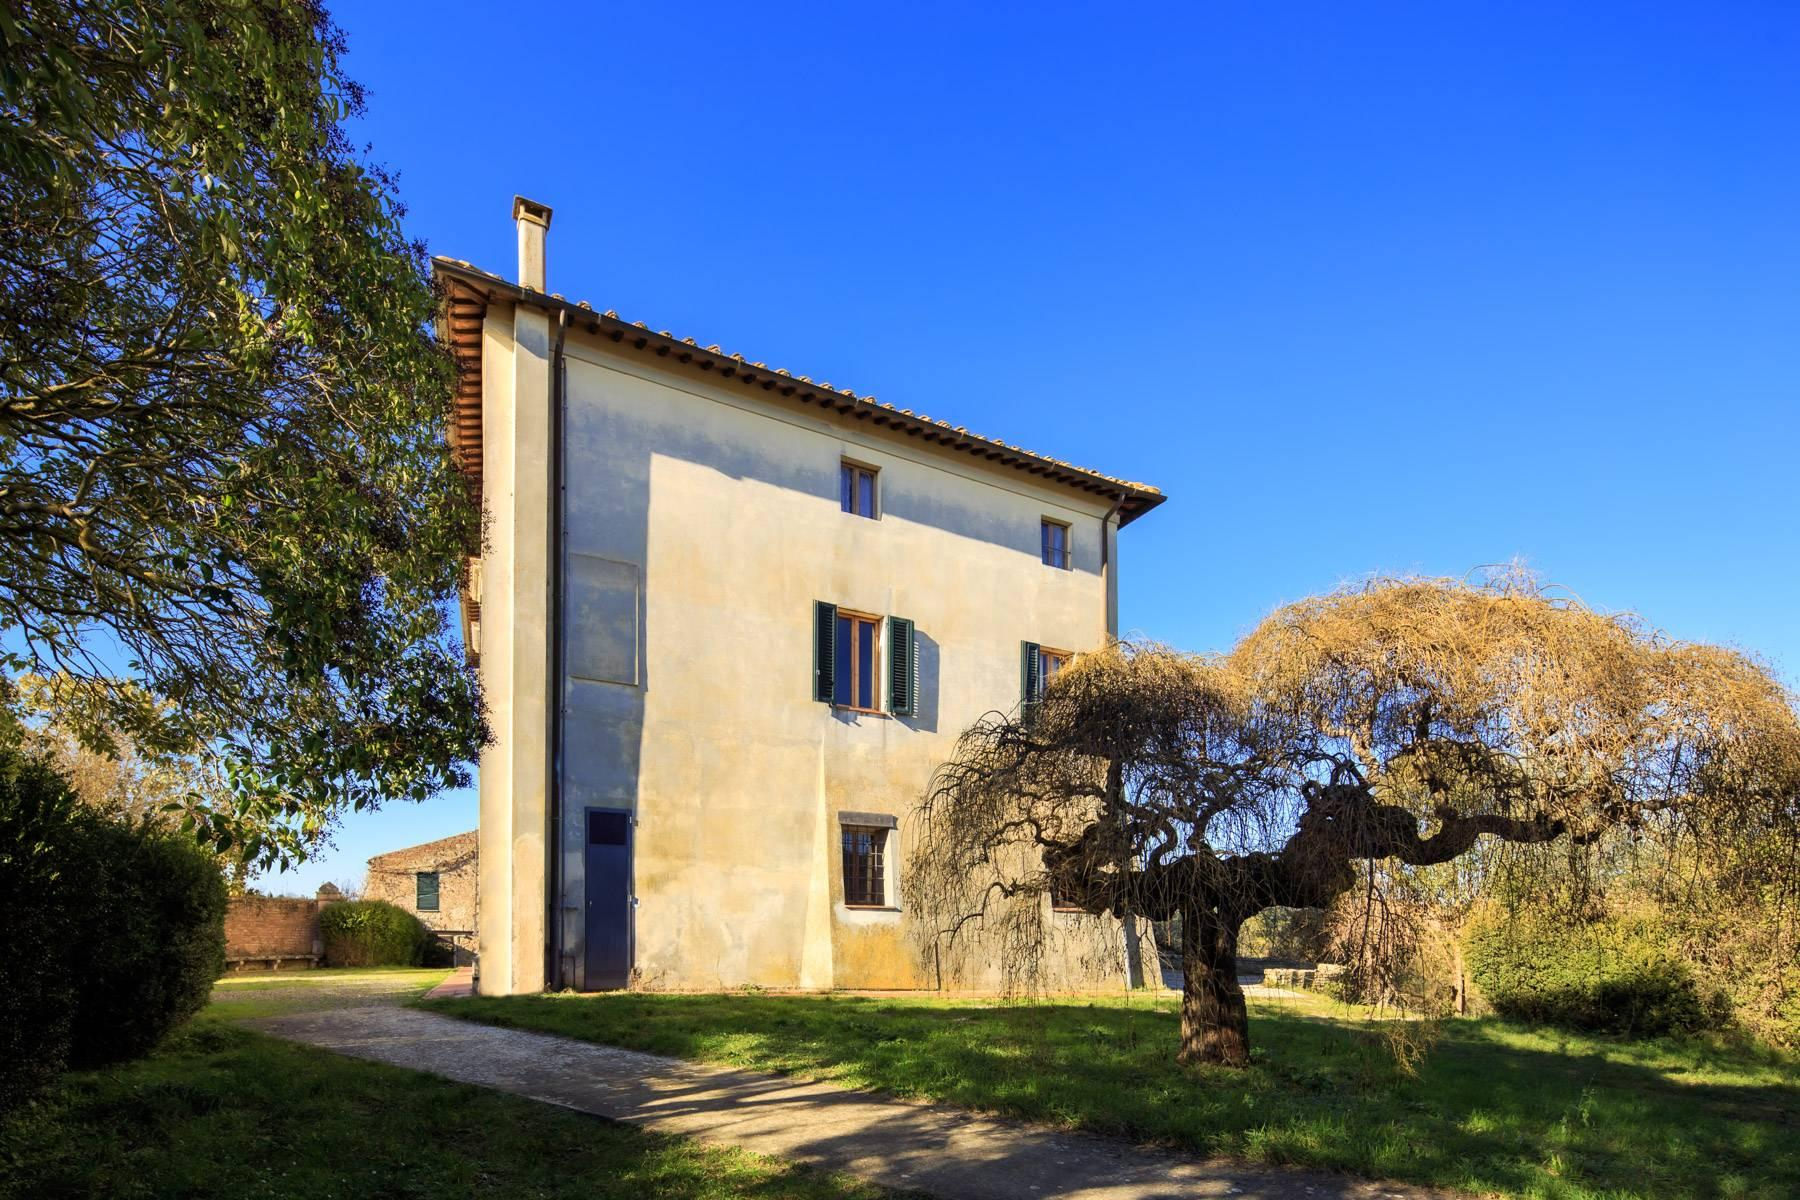 Wonderful historical Villa and country house close by Siena - 4